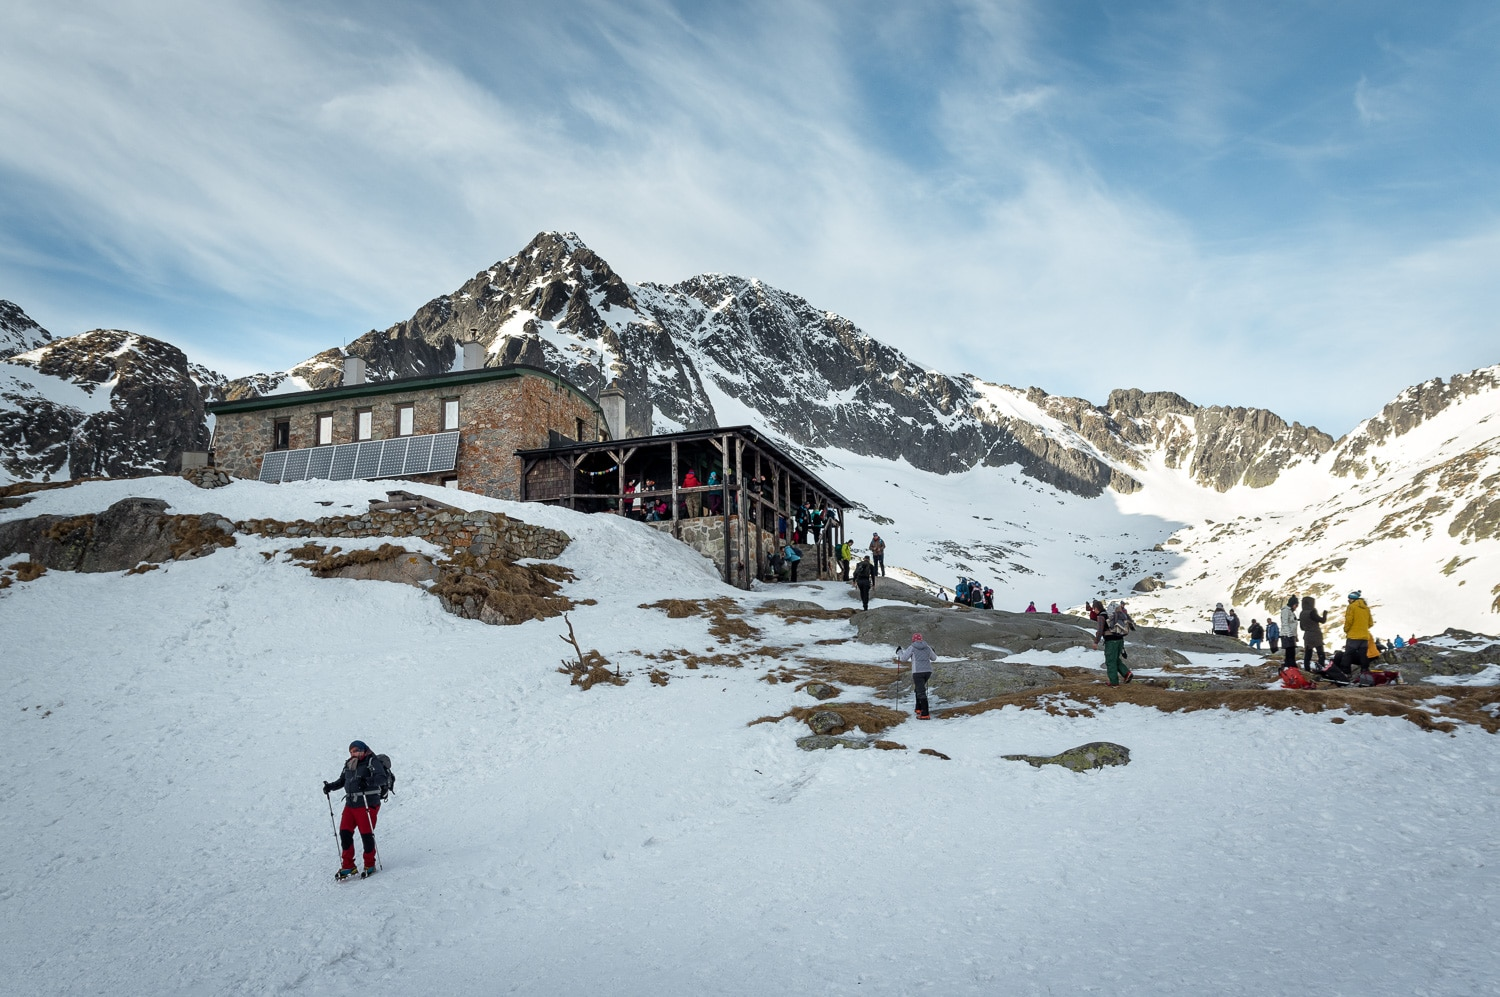 High Tatras: The Winter Trail to Teryho Chata